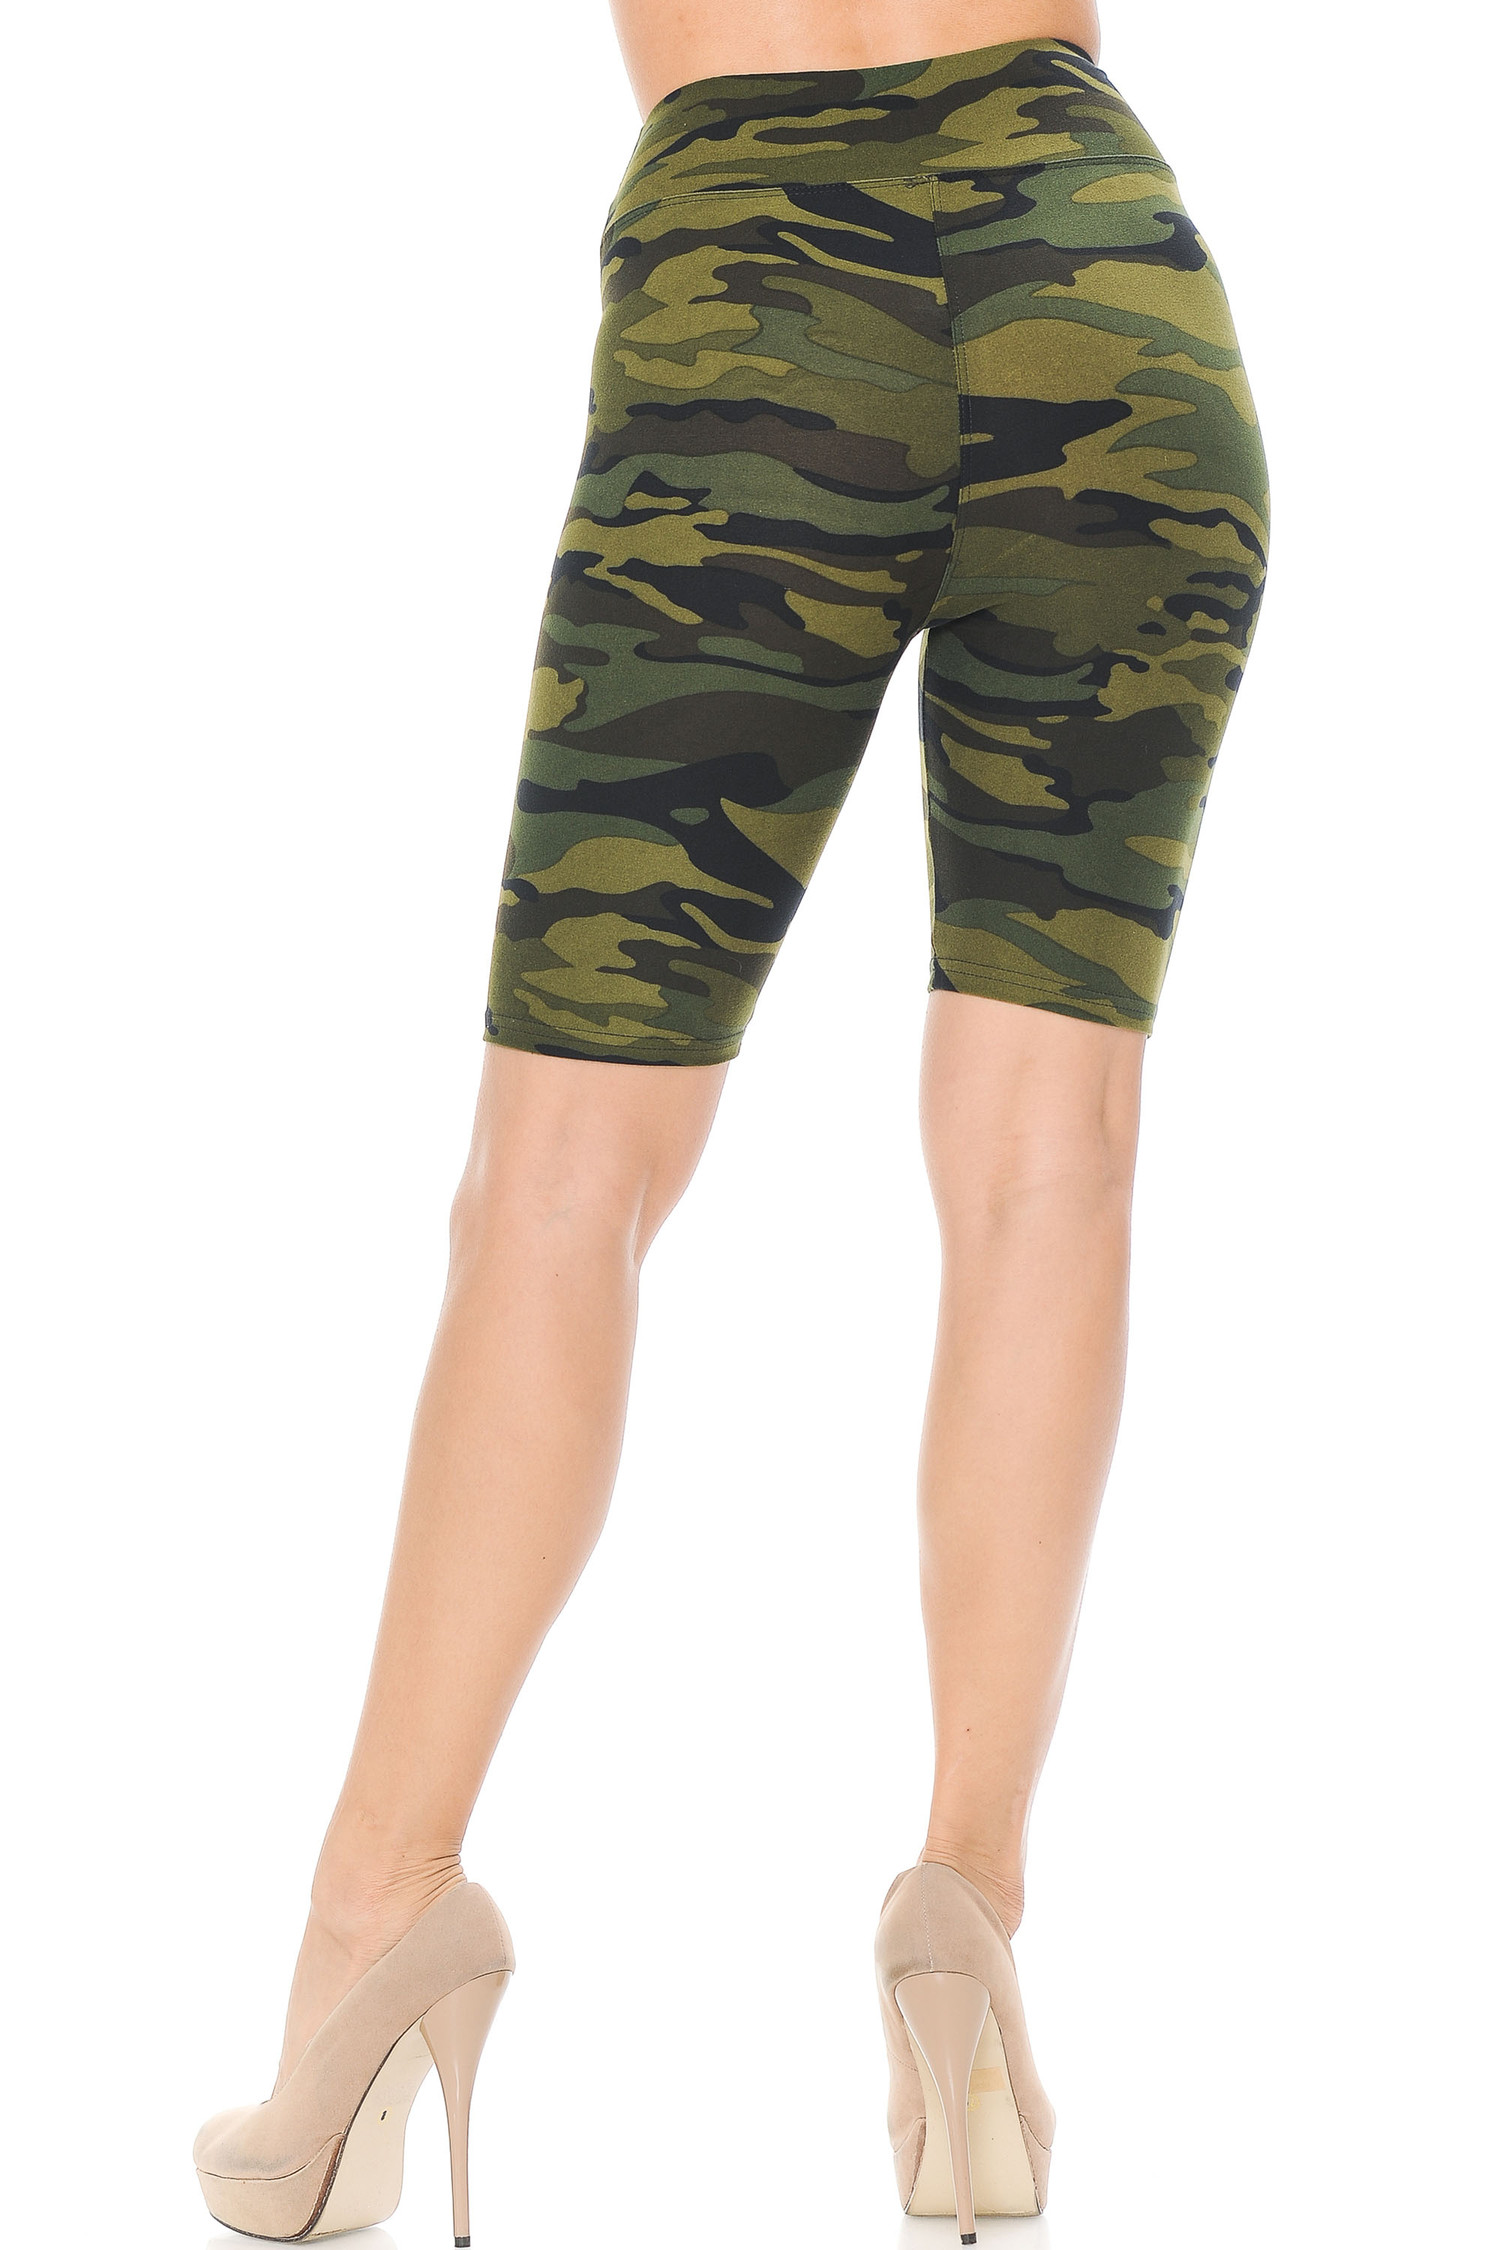 Brushed  Green Camouflage Plus Size Shorts - 3 Inch Waist Band